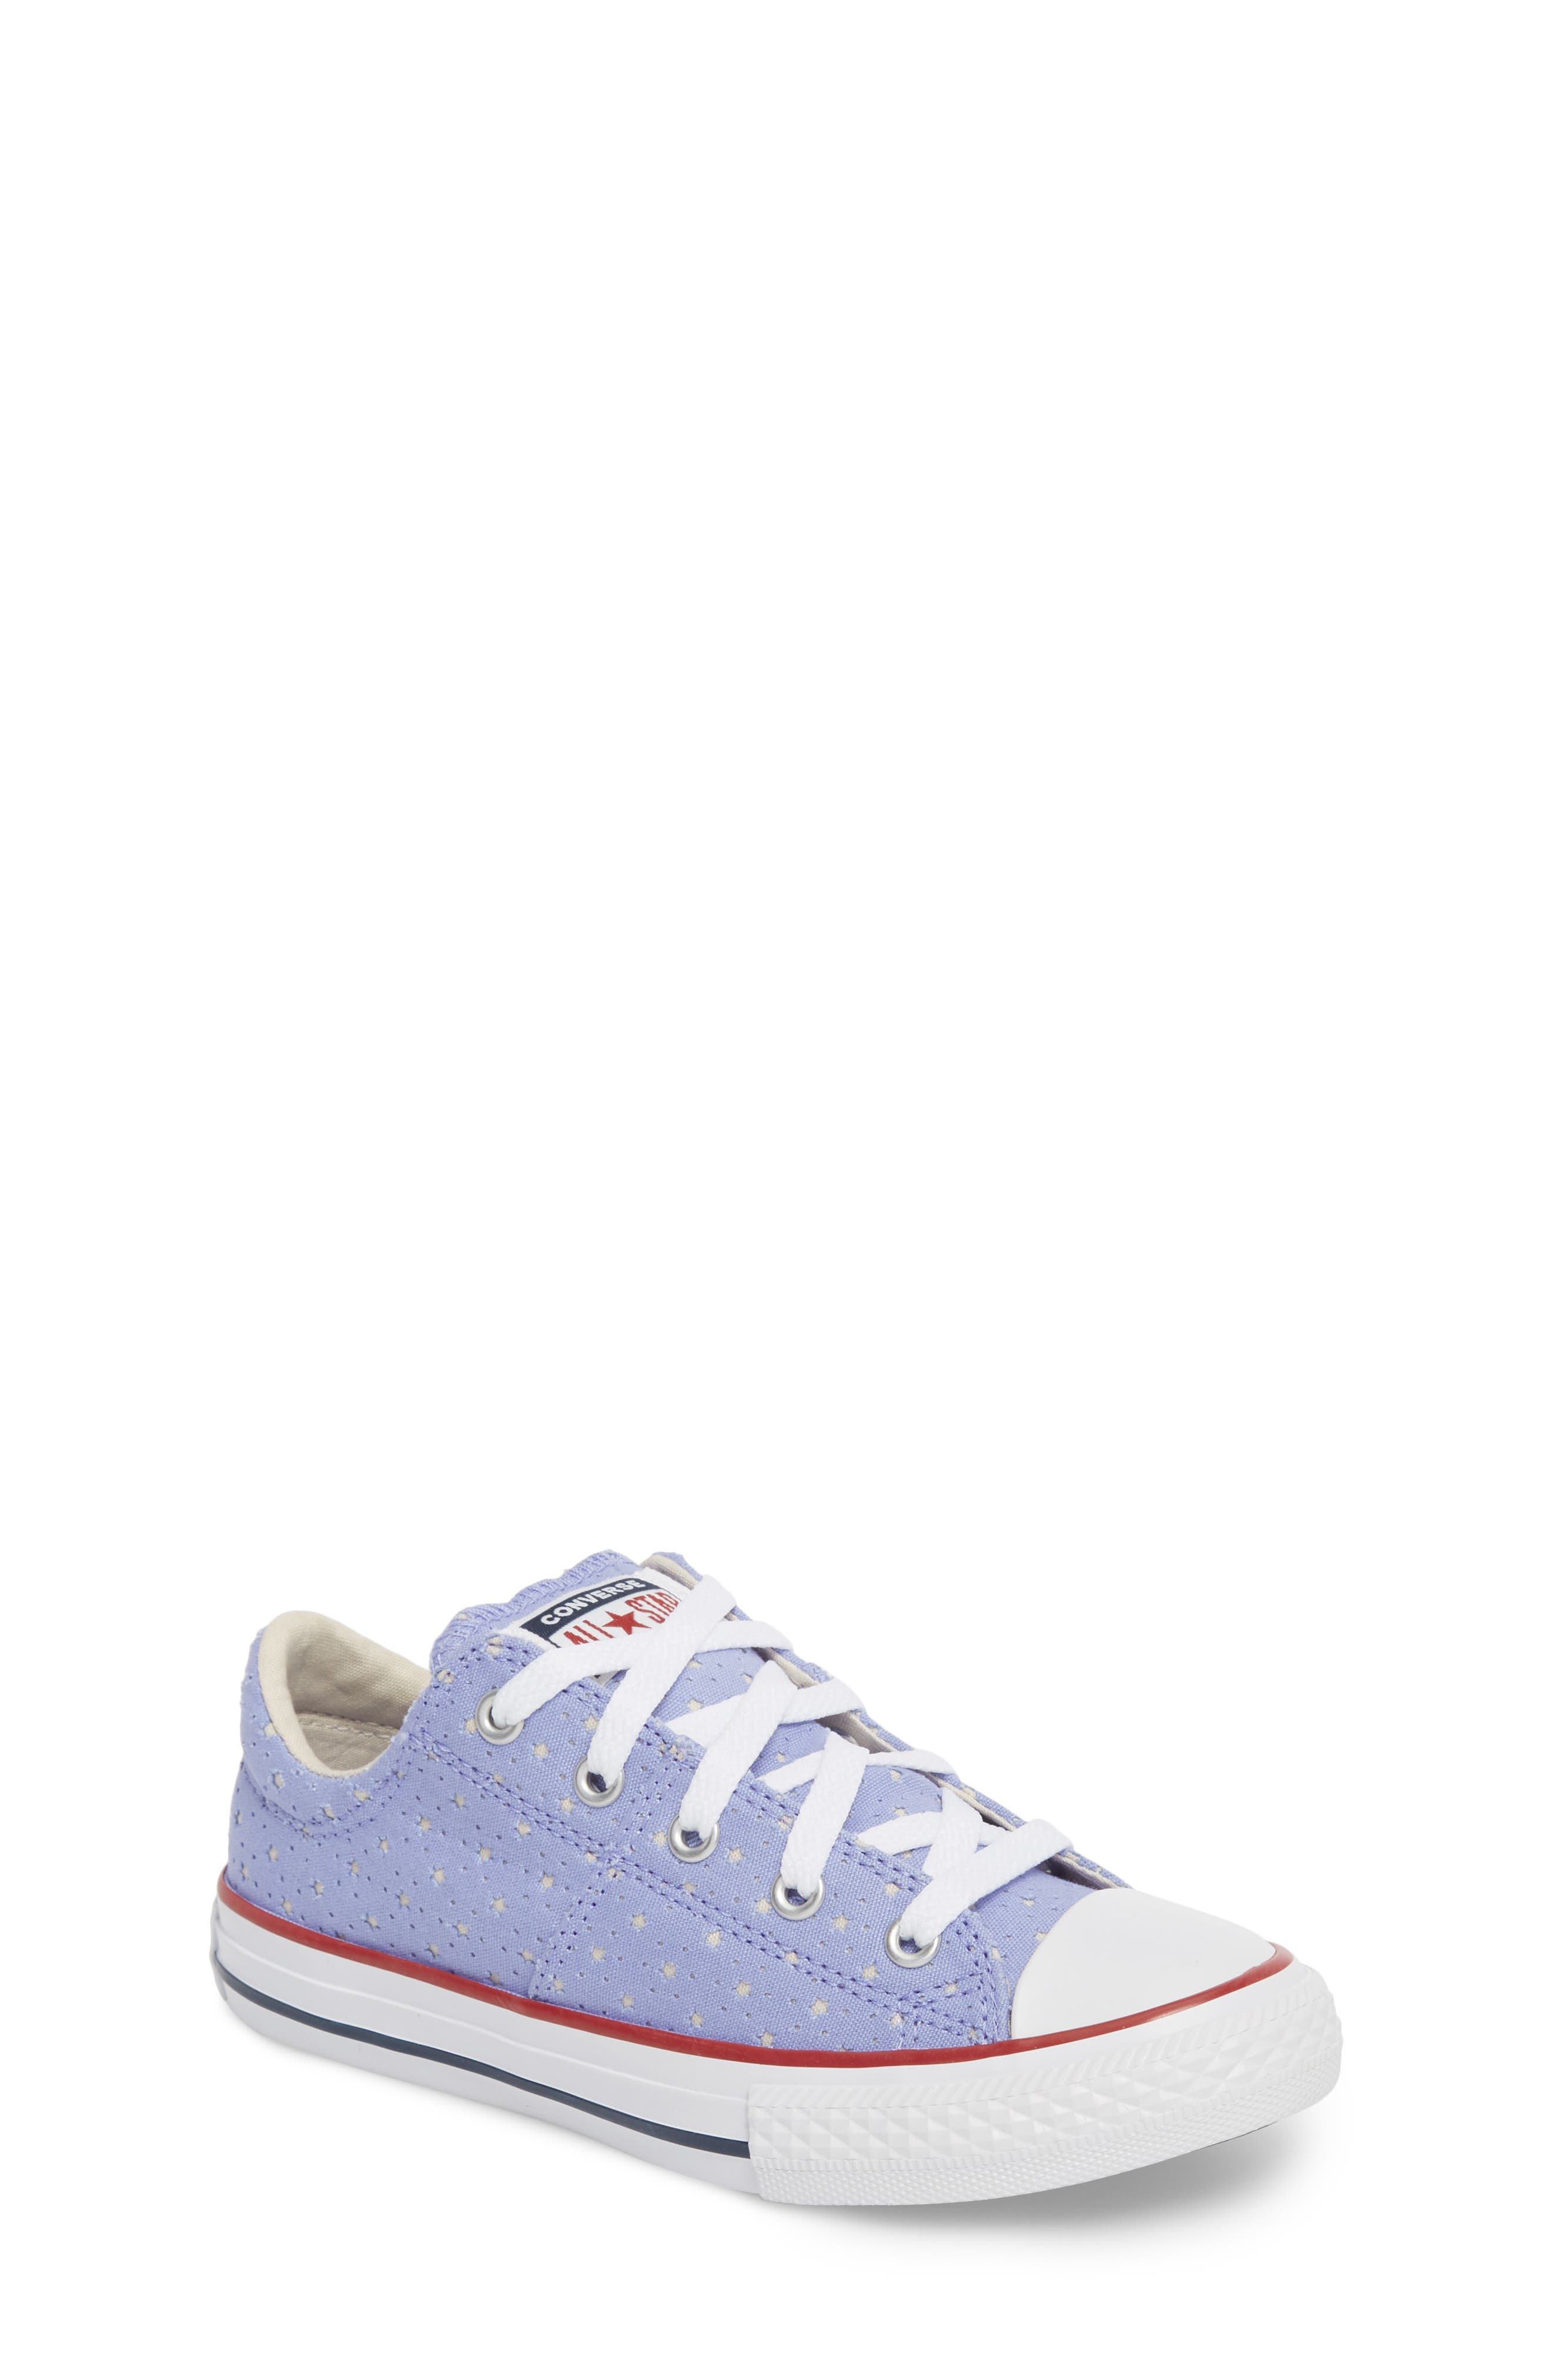 Chuck Taylor<sup>®</sup> All Star<sup>®</sup> Madison Sneaker,                             Main thumbnail 1, color,                             Twilight Pulse